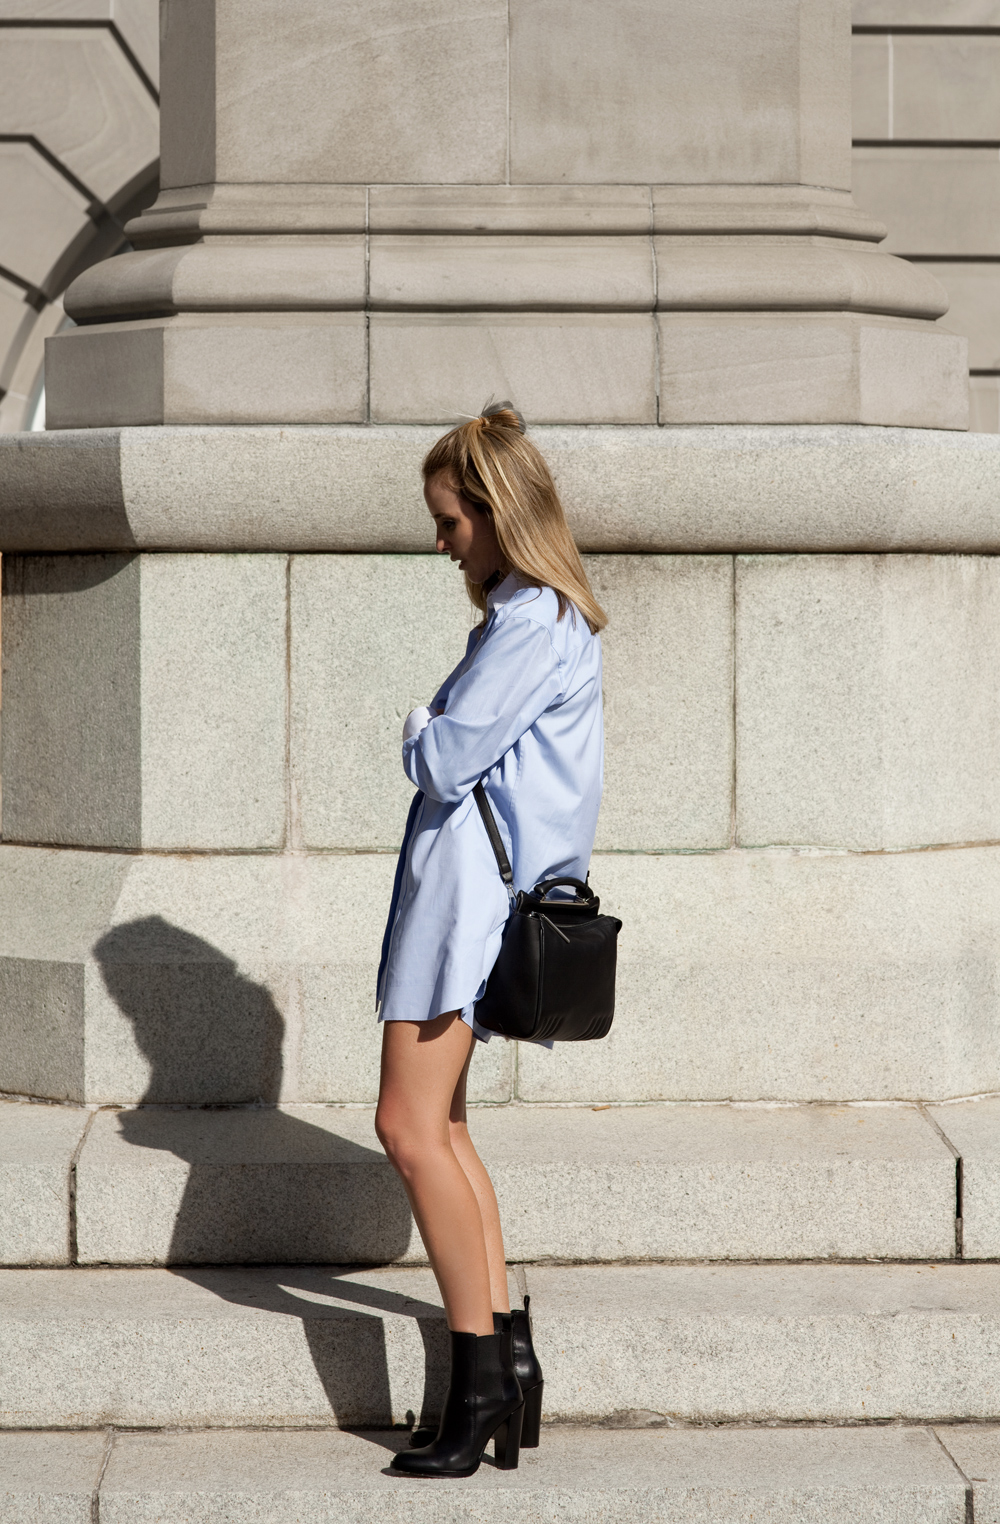 Amanda Shadforth is wearing a light blue shirt, shorts and boots from Alexander Wang and satchel from 3.1 Philip Lim